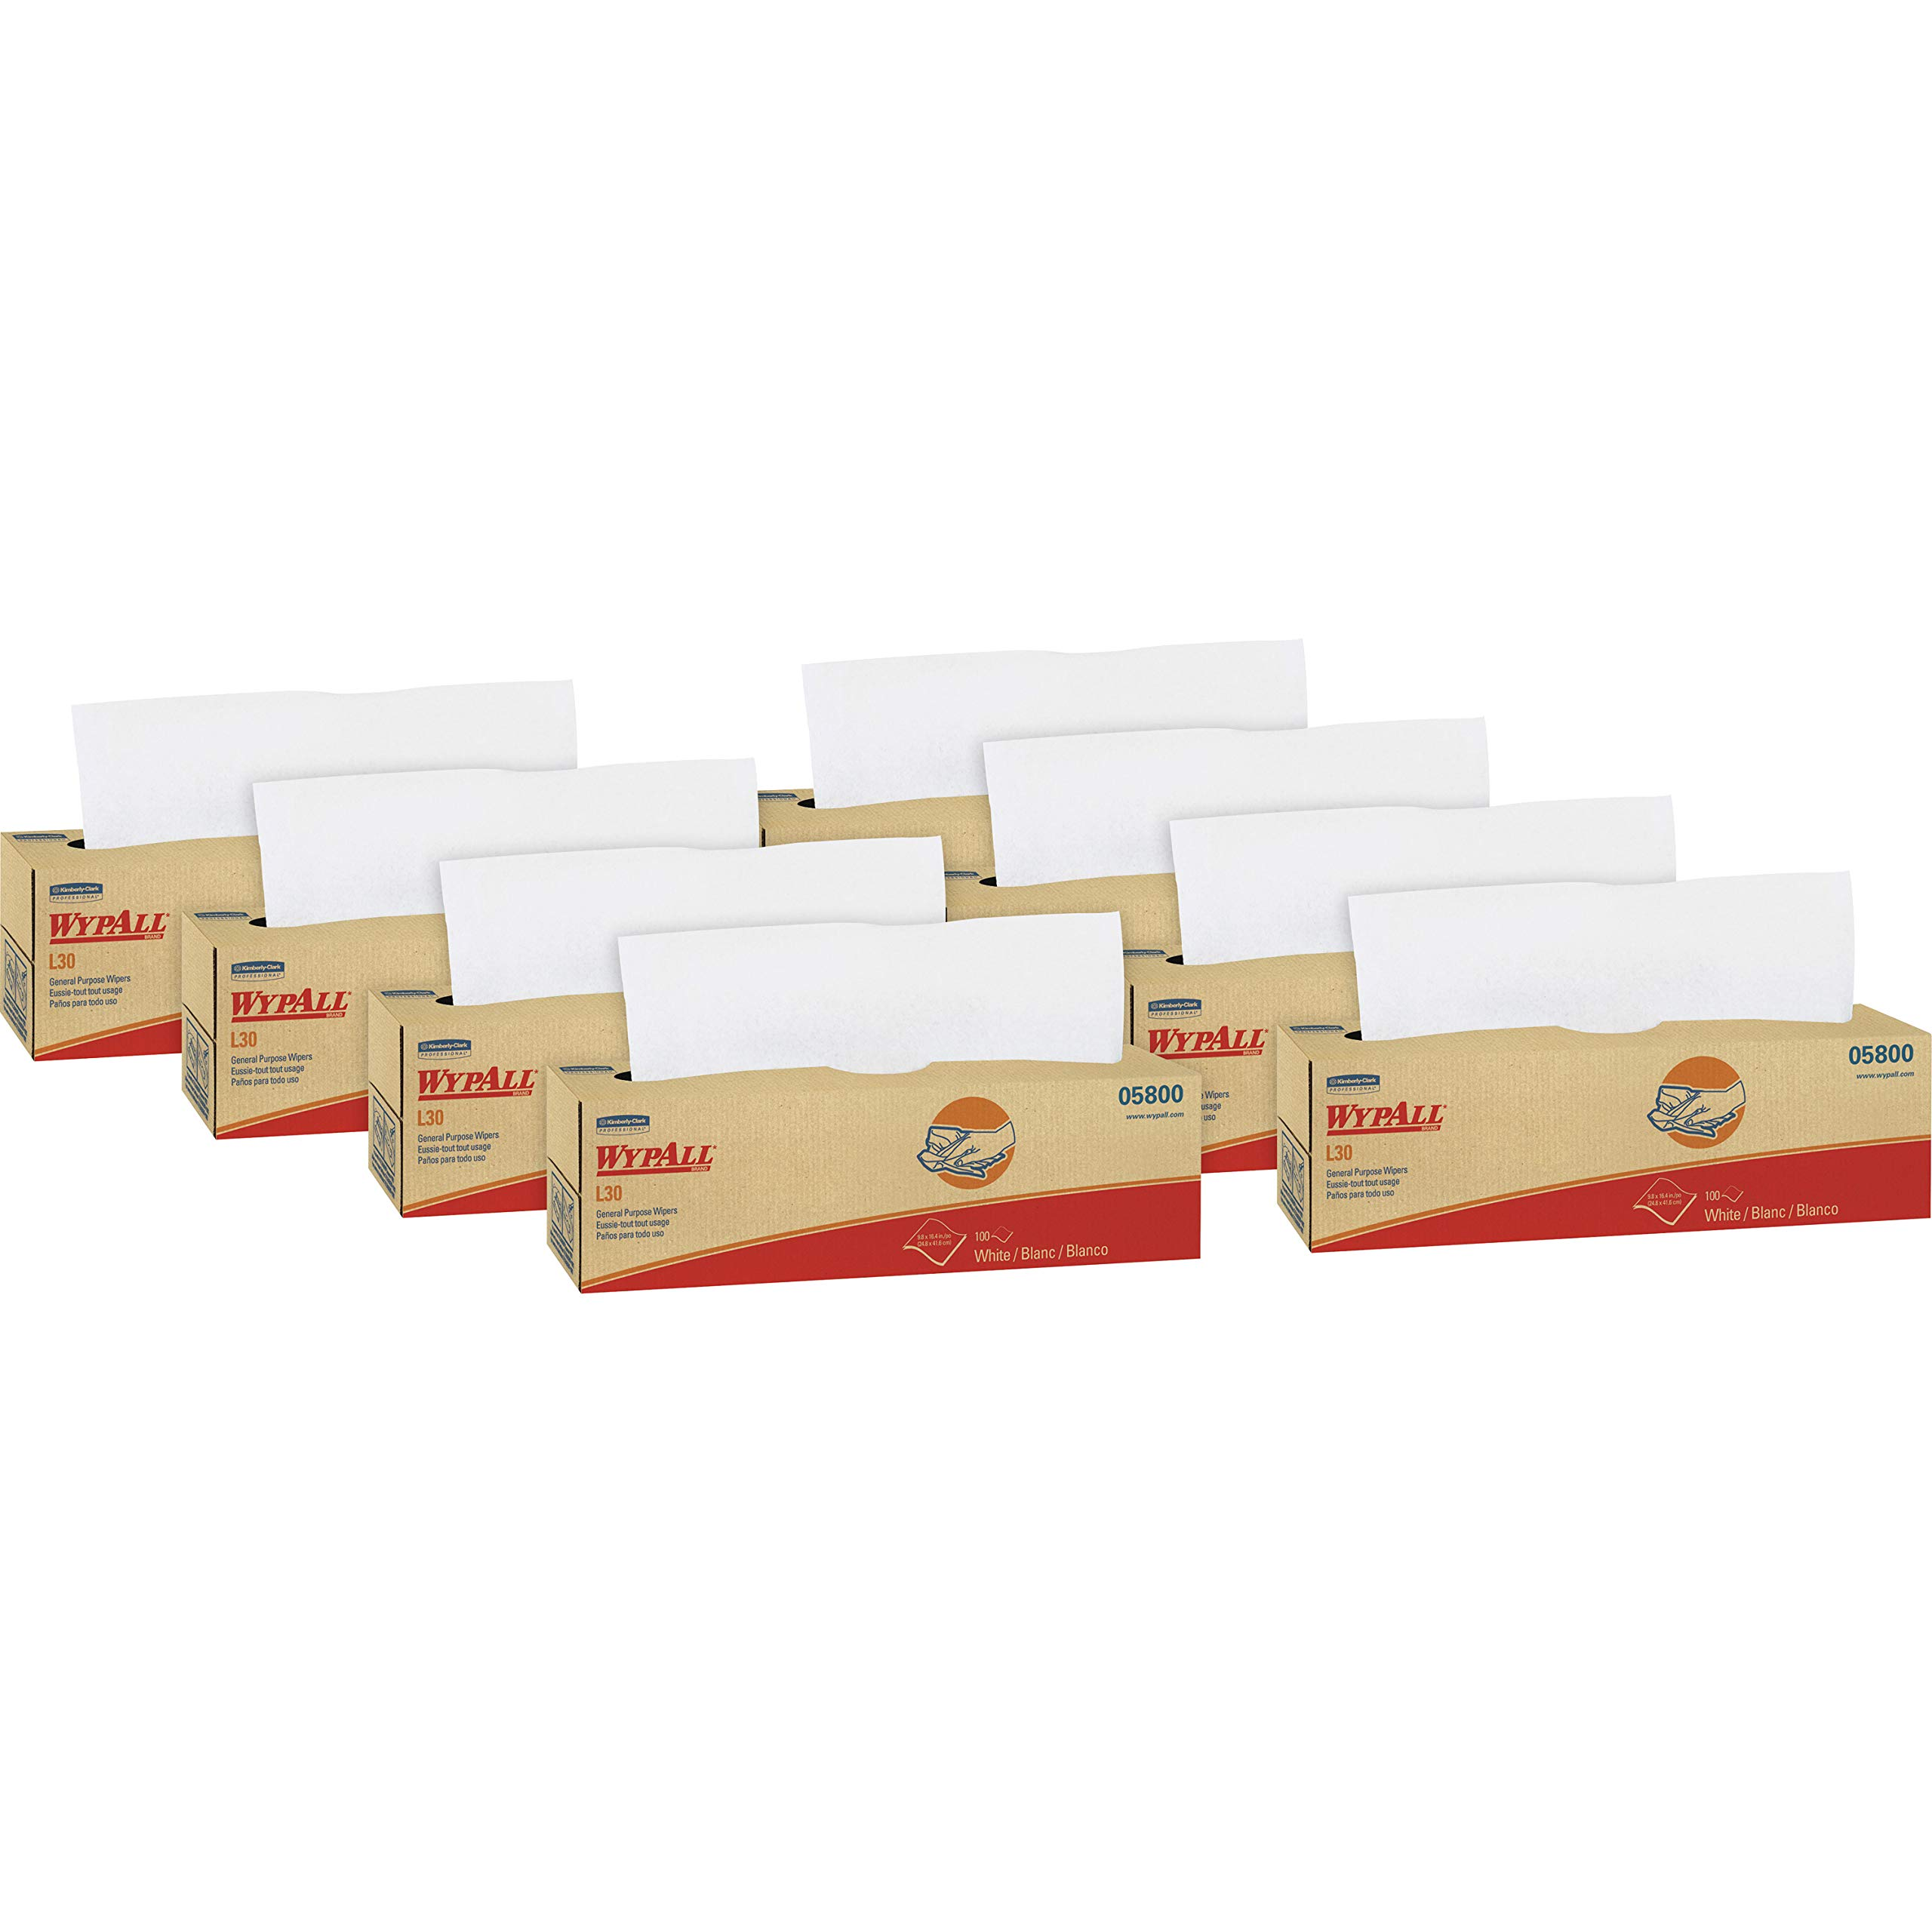 Wypall L30 DRC Towels (05800), Strong and Soft Wipes, White, 100 Sheets / Pop-Up Box, 8 Boxes / Case, 800 Wipes / Case